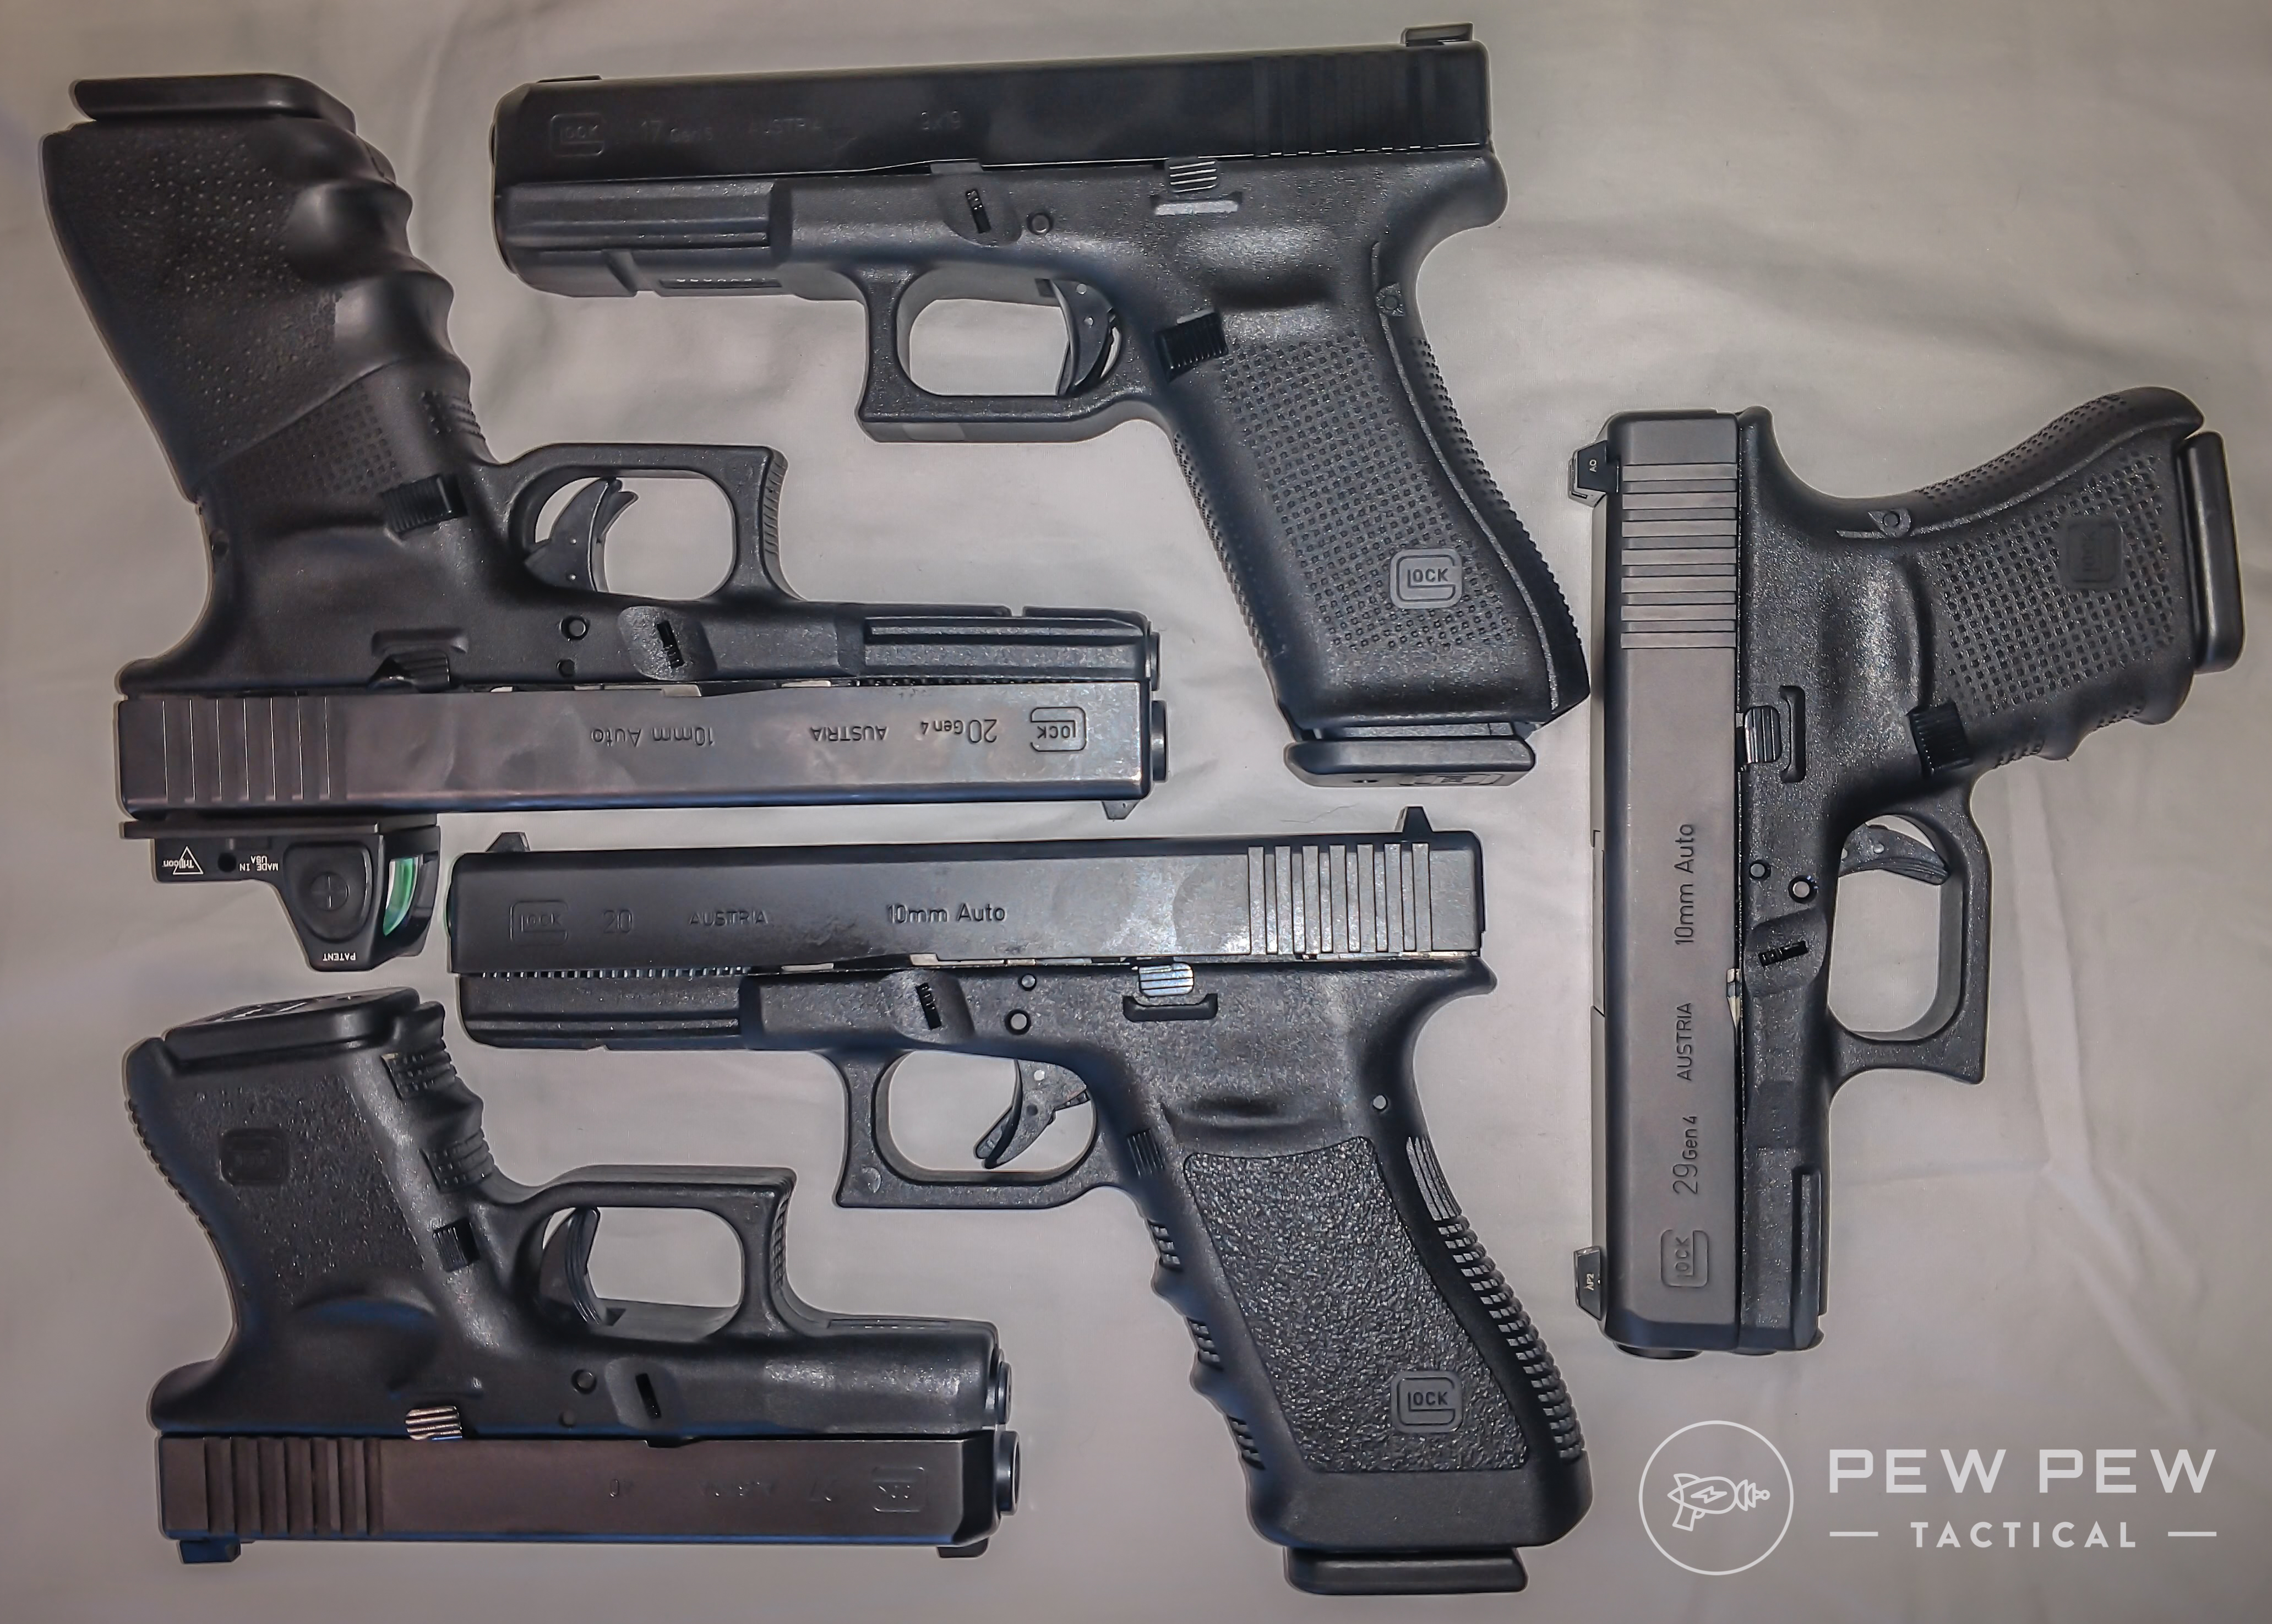 There are a ton of Glocks on the market, each offering different benefits. Try a variety before you choose just one.